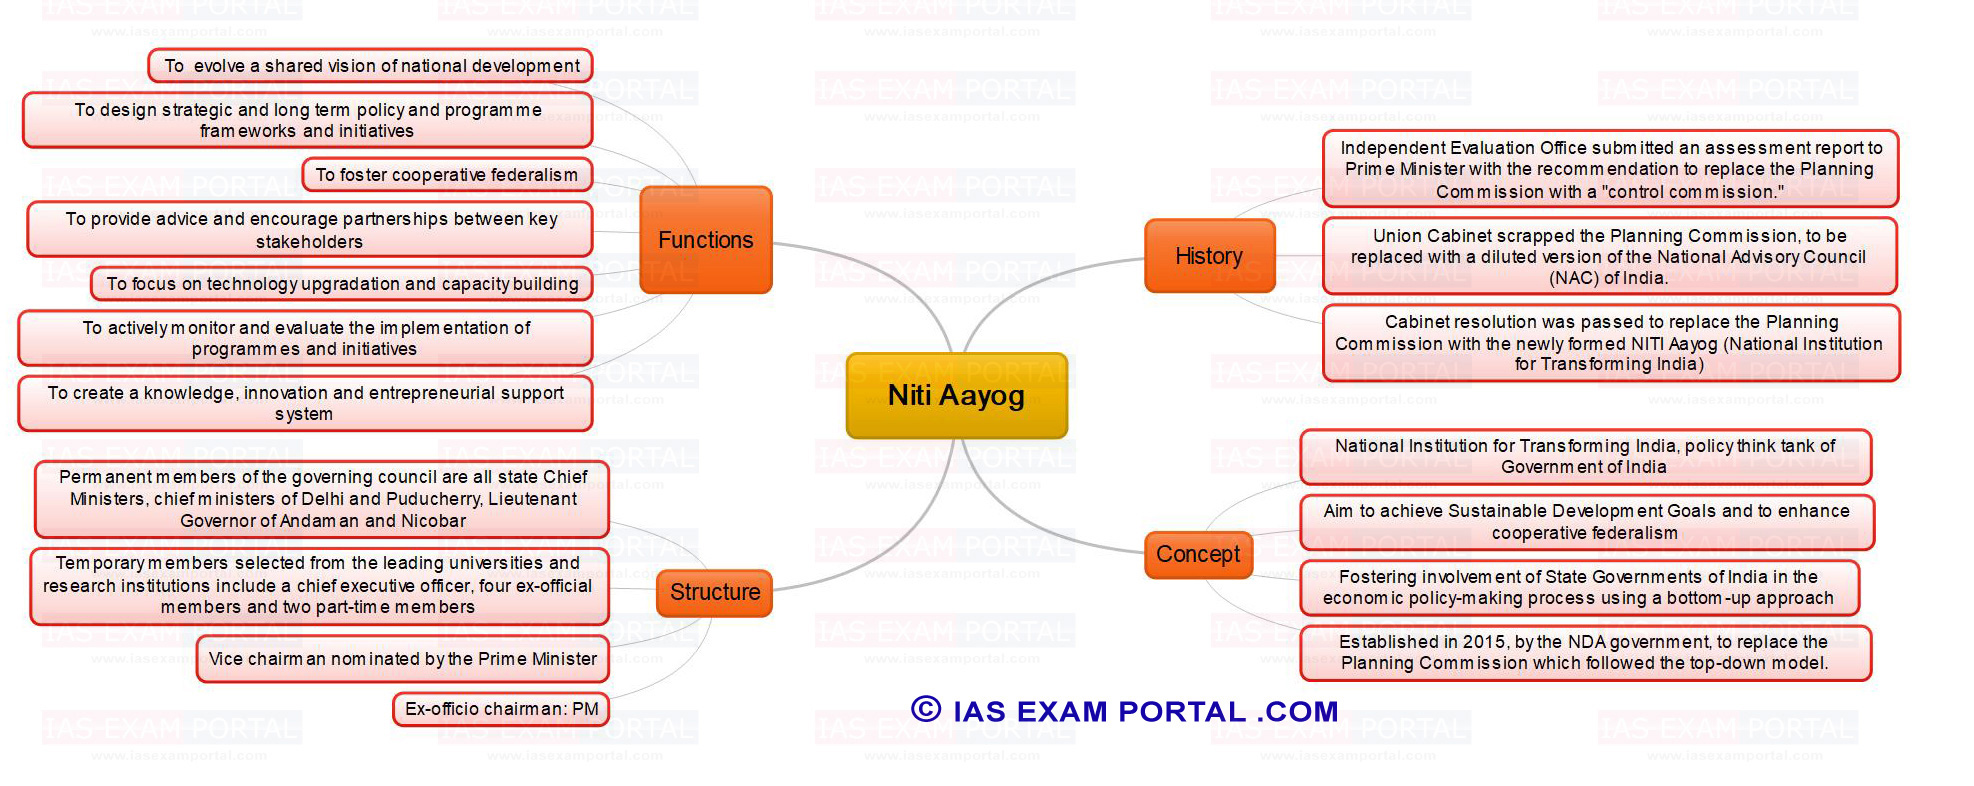 https://iasexamportal.com/sites/default/files/mind-map-for-upsc-public-administration-niti-aayog.jpg